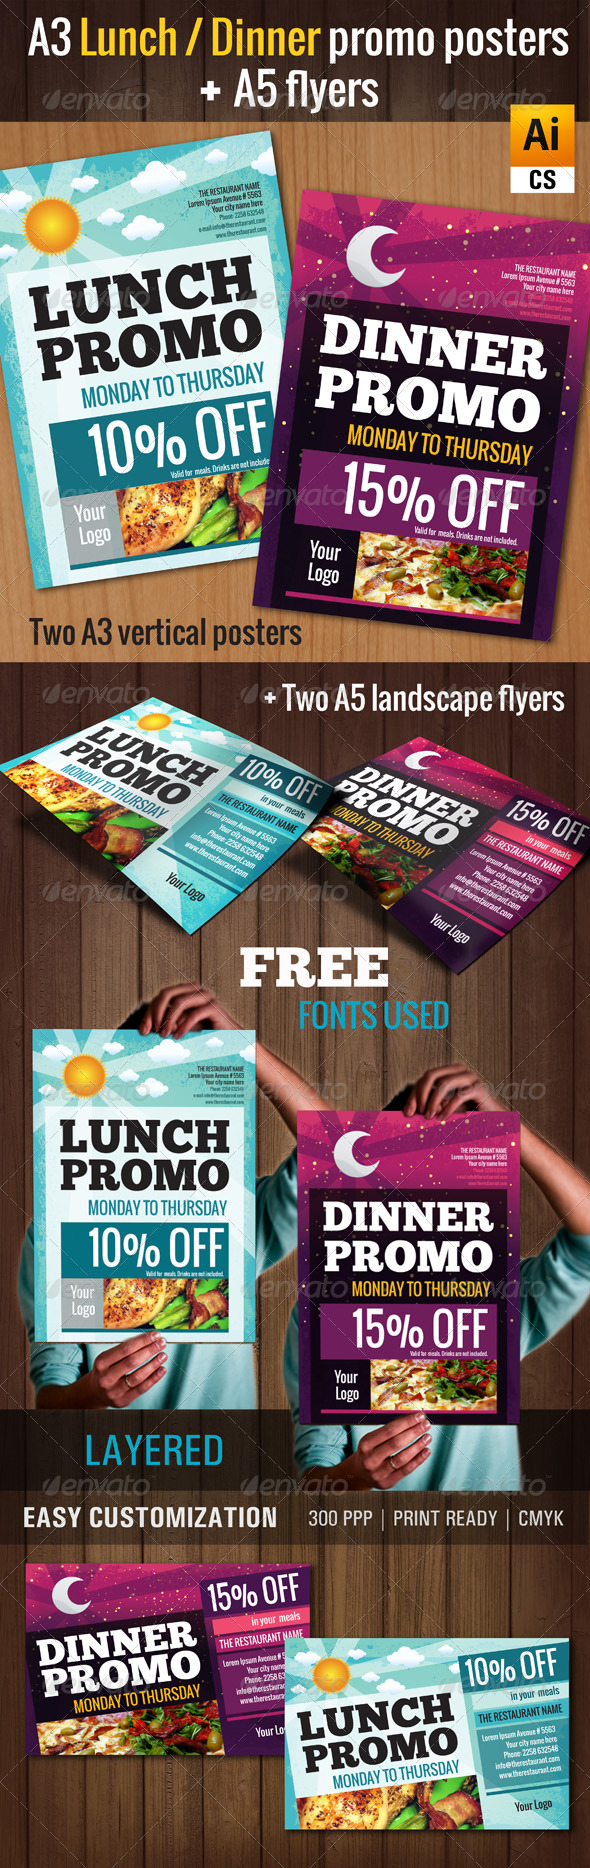 GraphicRiver A3 Lunch Dinner Promo Poster 4875792